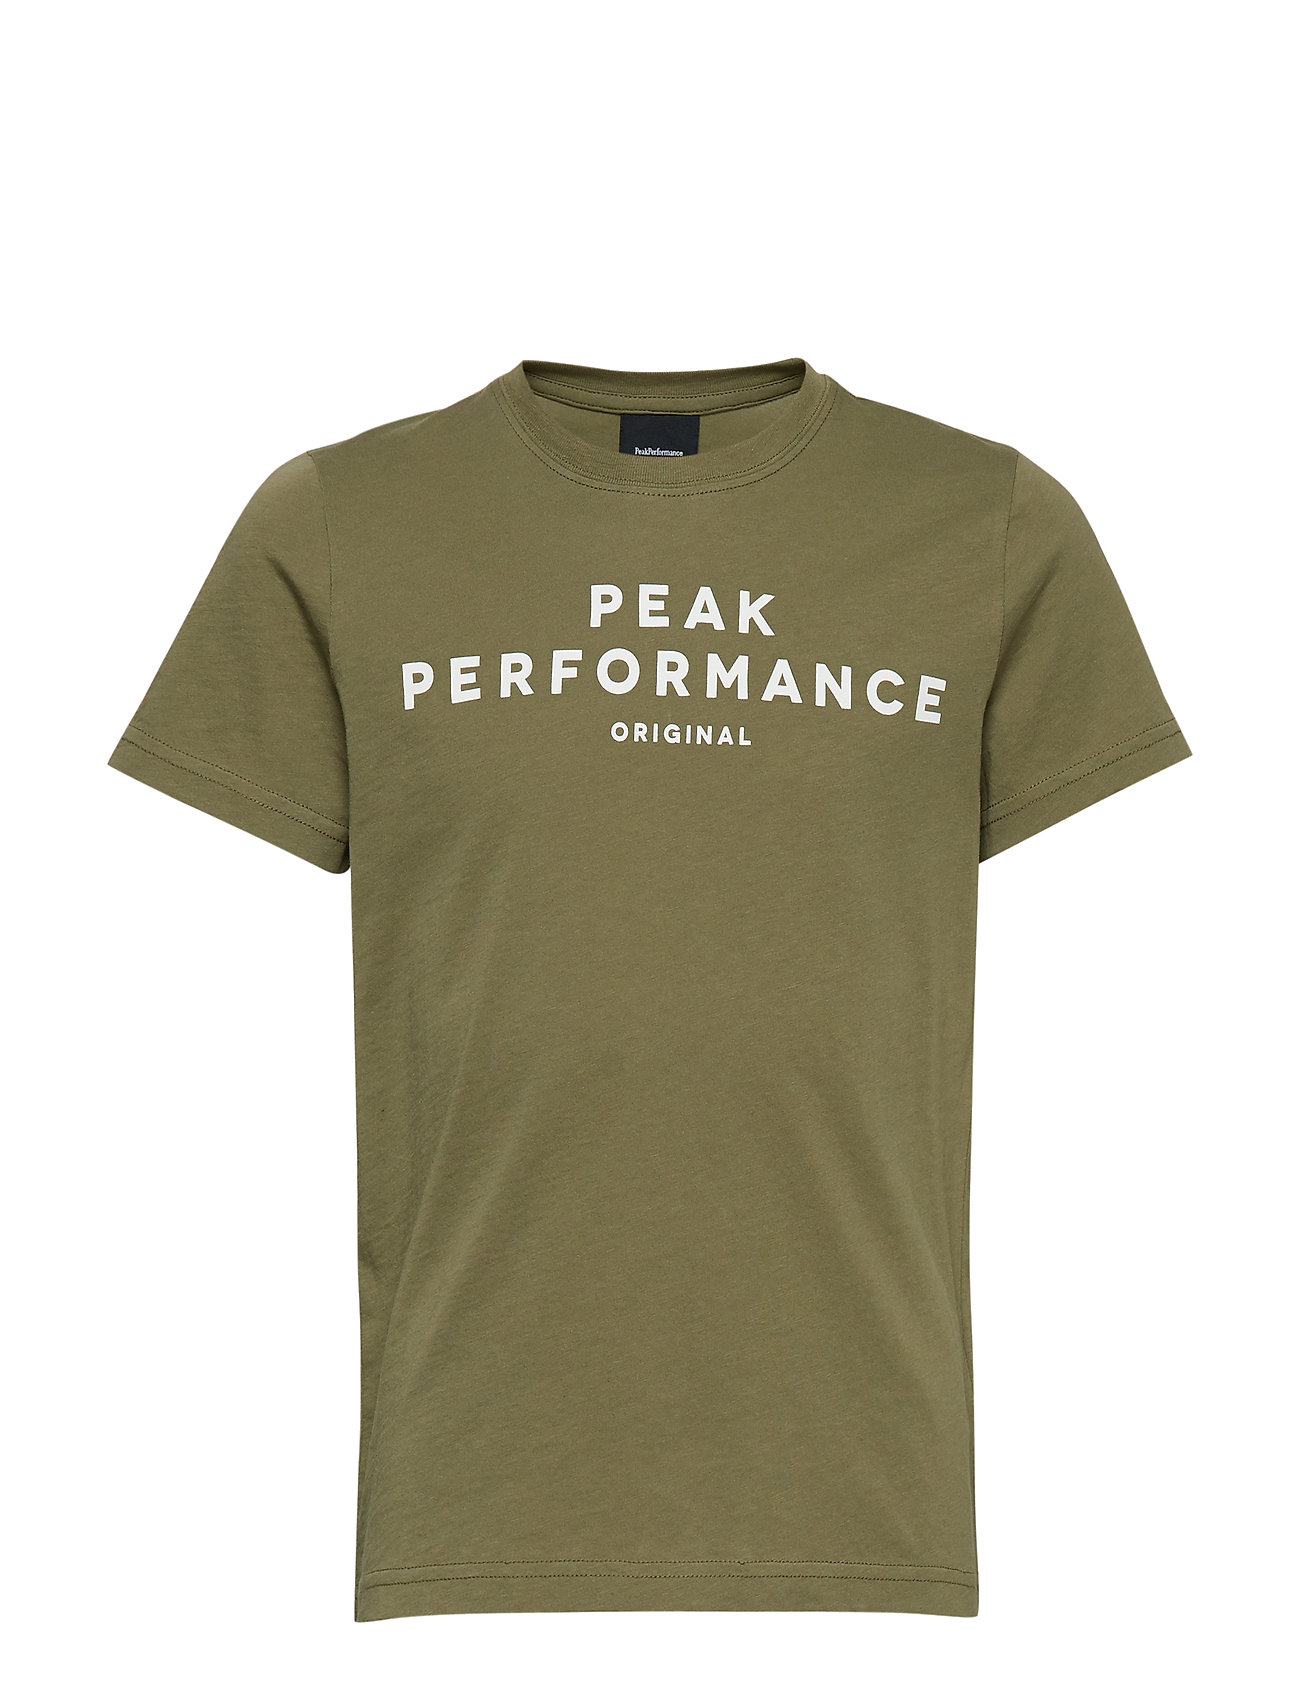 Peak Performance JR ORIG T - LEAFLET GREEN